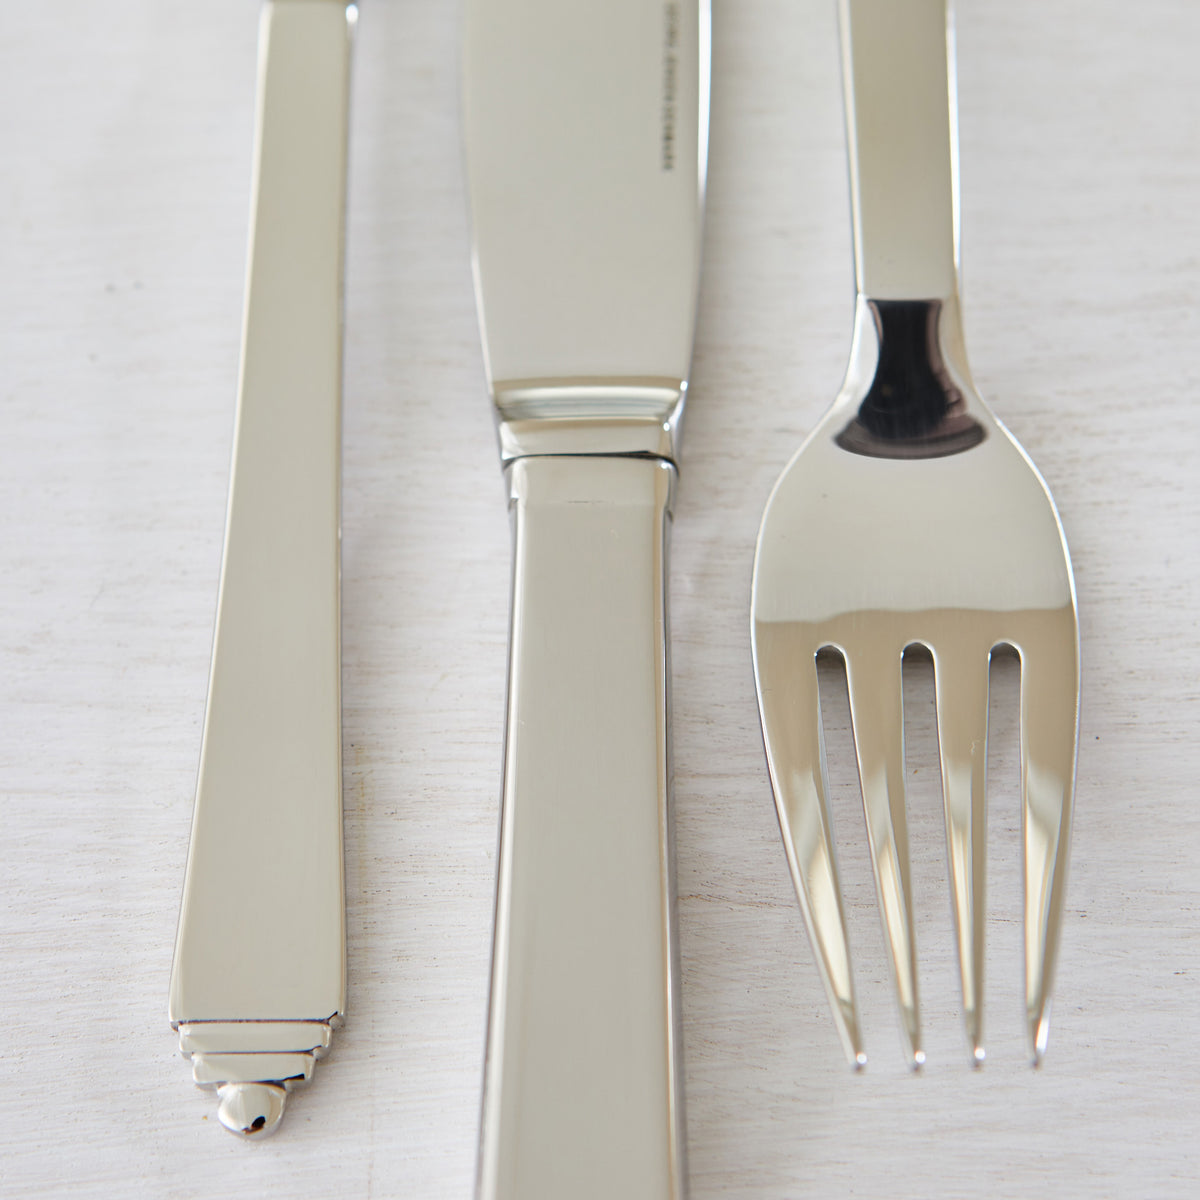 GEORG JENSEN PYRAMID CUTLERY SET